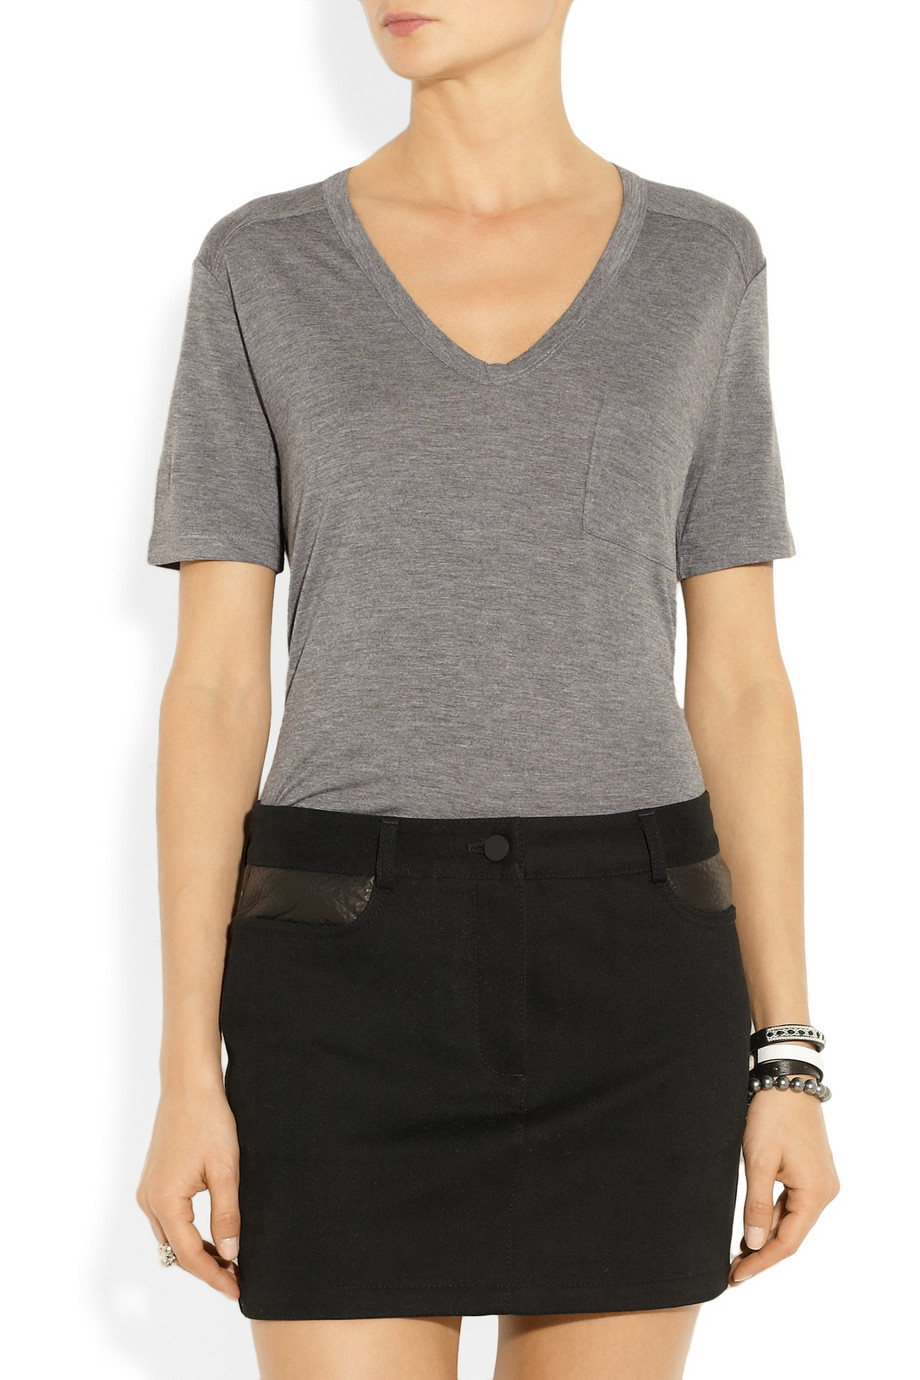 T by alexander wang classic jersey t shirt in gray lyst for T by alexander wang t shirt